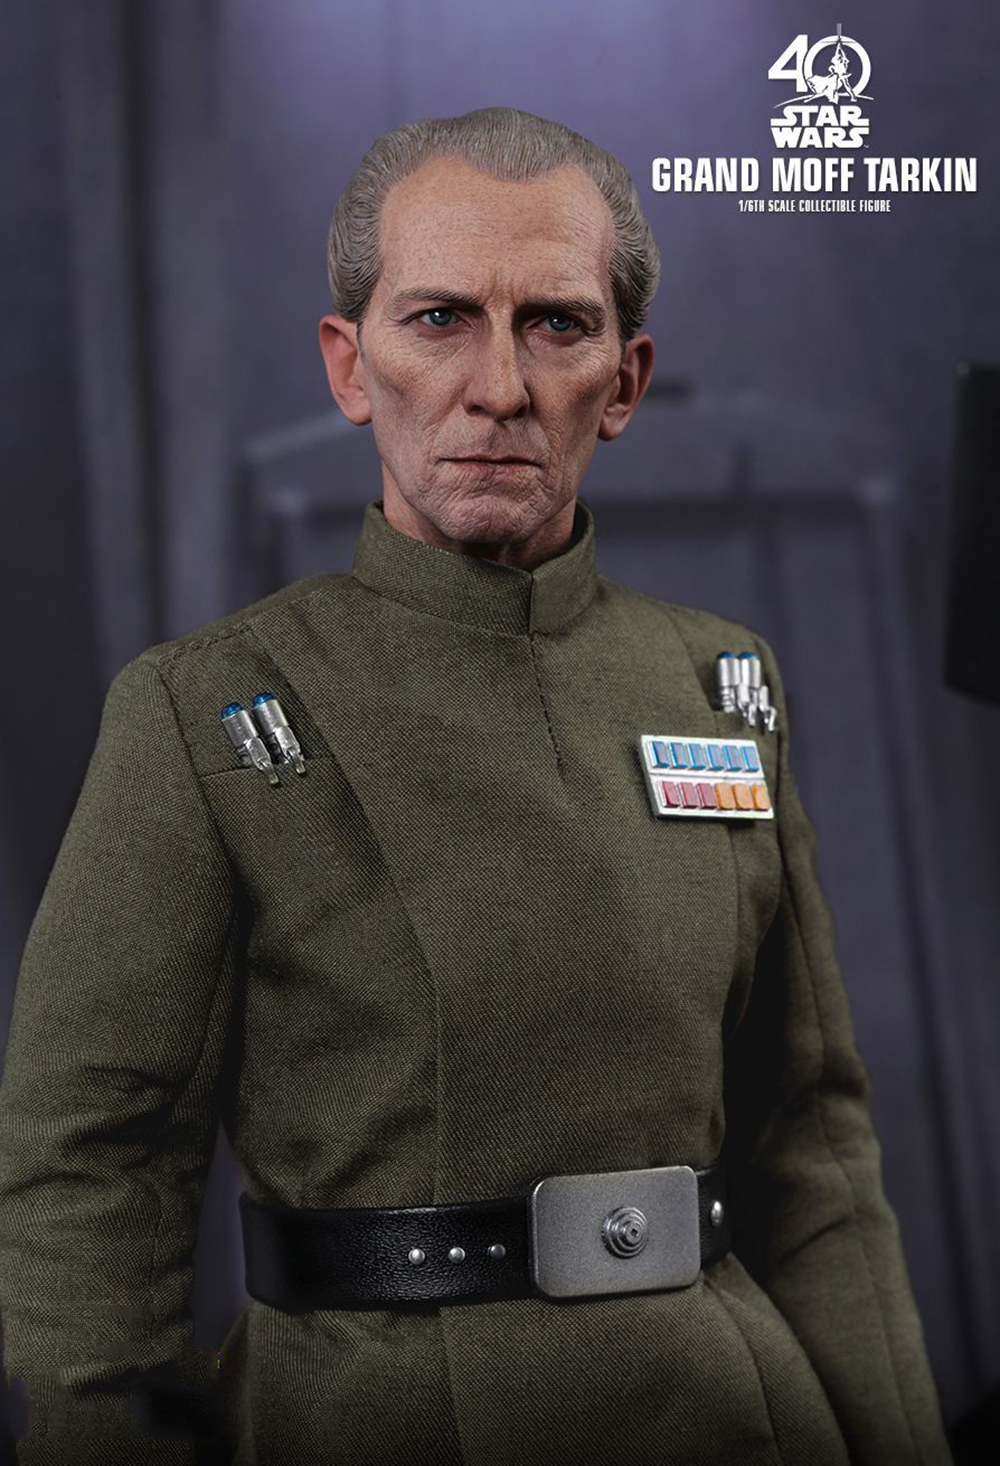 Full set Colletible 1/6 Scale Star Wars: Episode IV - A New Hope Grand Moff Tarkin Peter Cushing Figure Model Toys 4